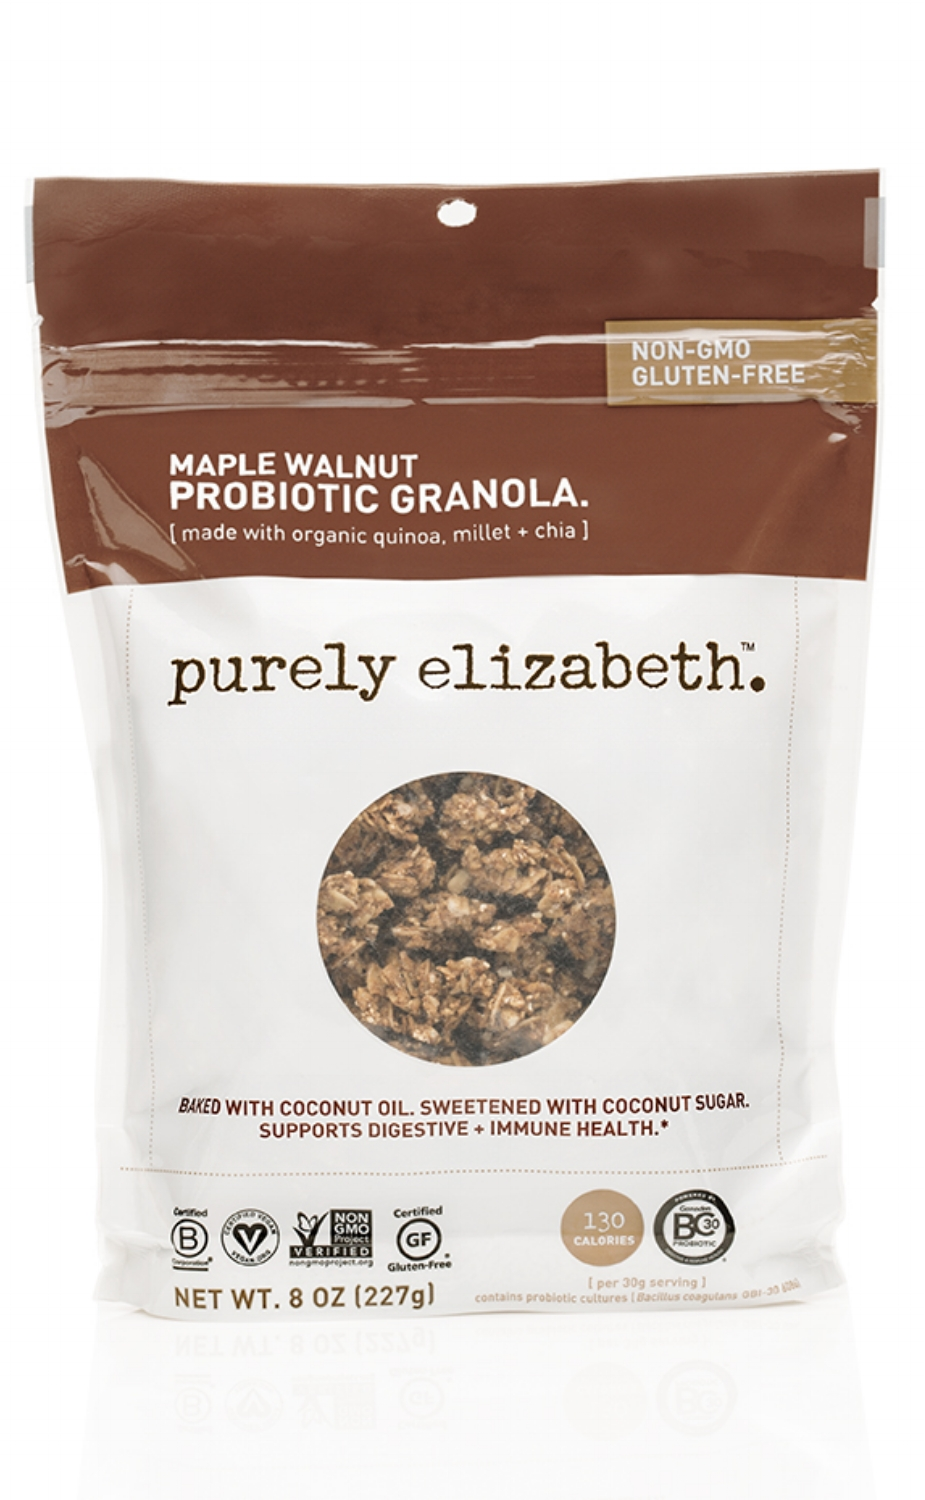 MAPLE-WALNUT-PROBIOTIC-GRANOLA-PHOTO.jpg